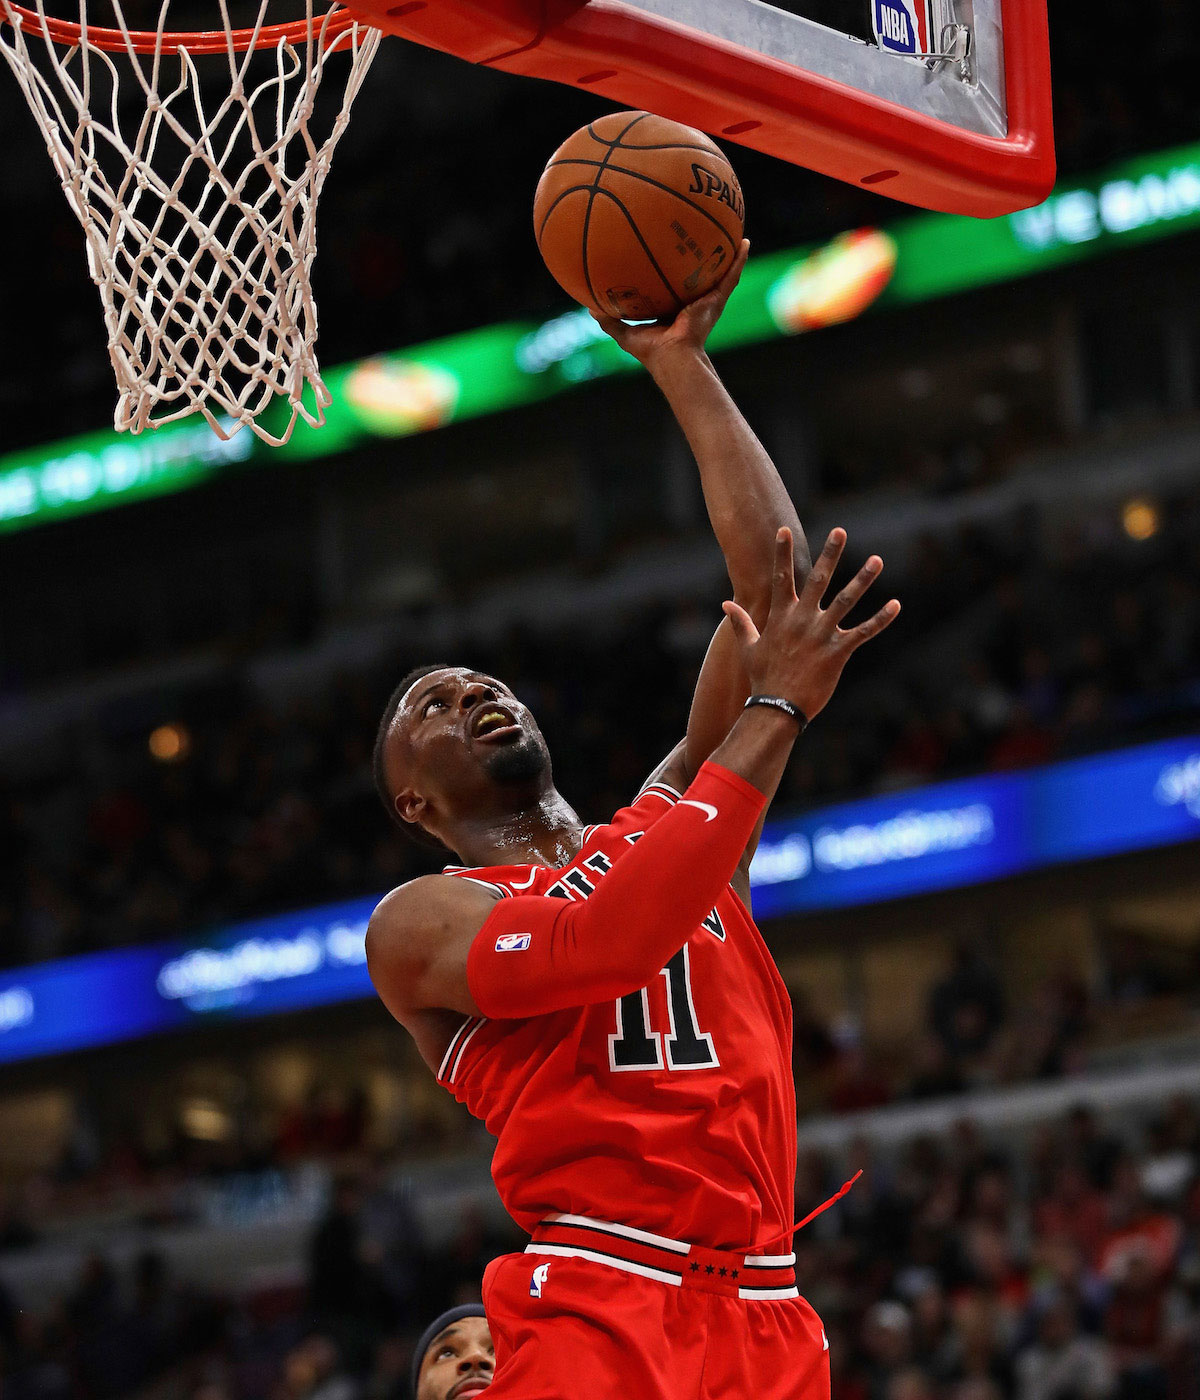 David Nwaba #11 of the Chicago Bulls goes to the basket against the Atlanta Hawks on October 26, 2017 at the United Center in Chicago, Illinois.